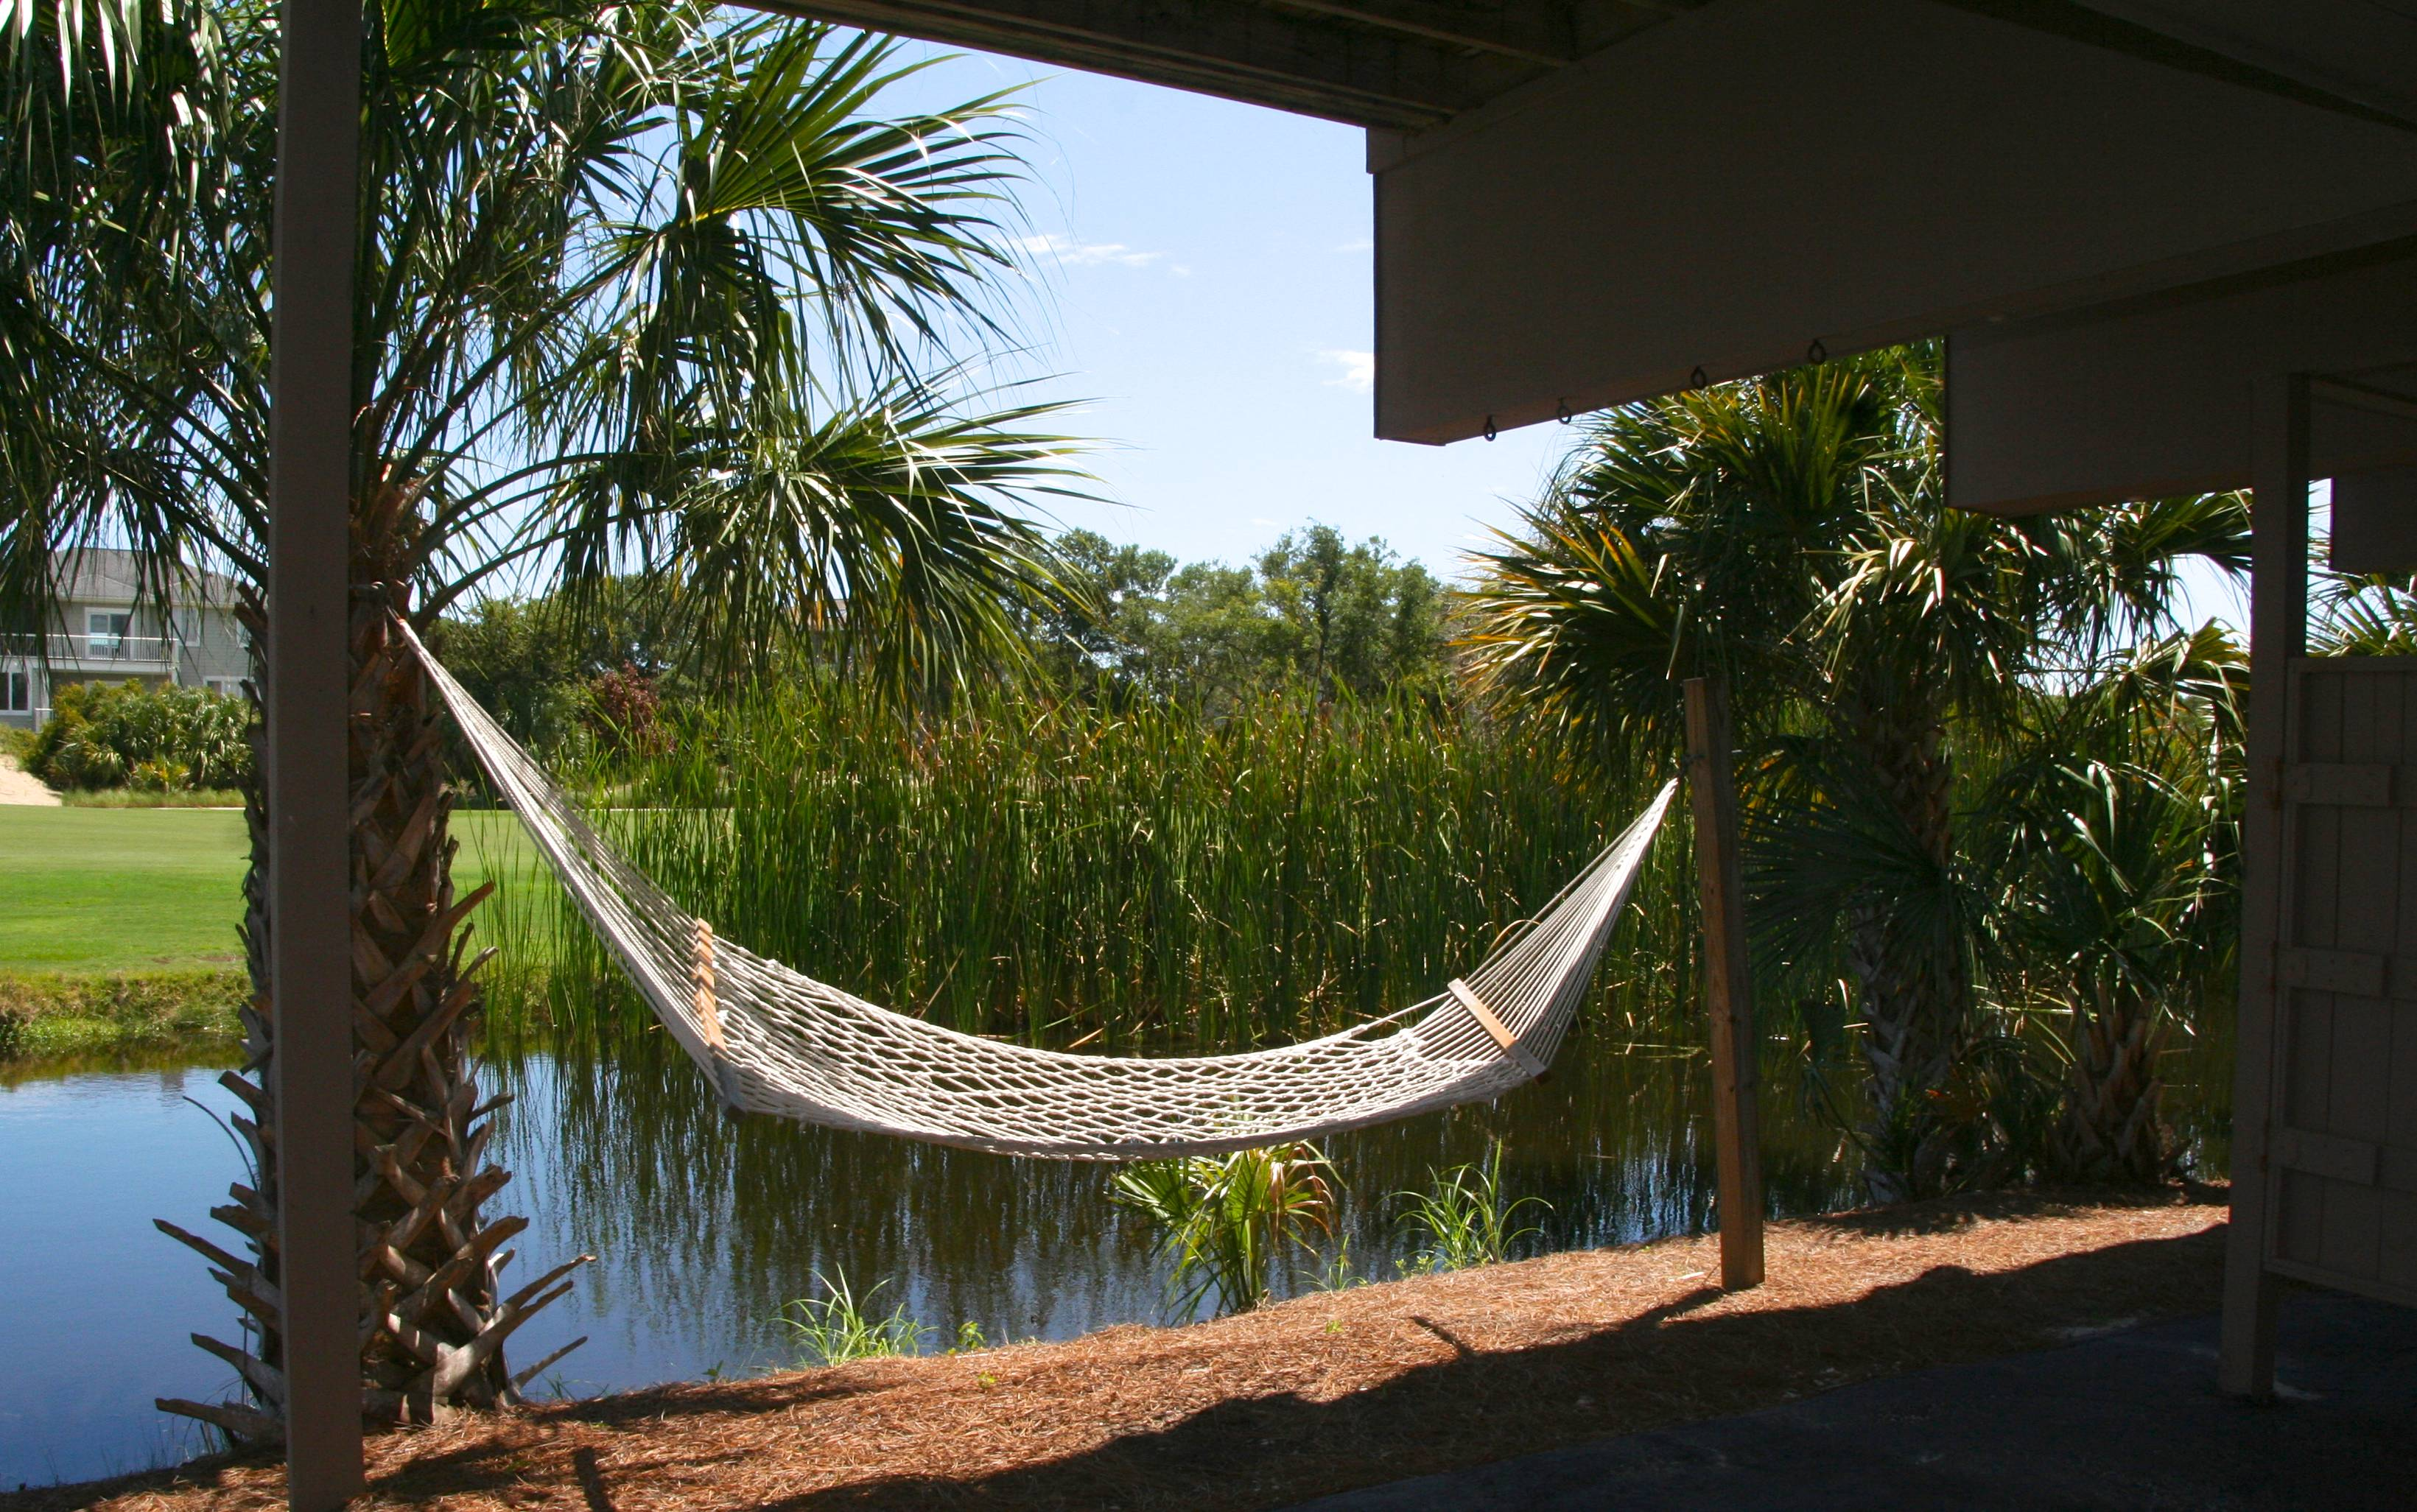 Swing in the hammock while waiting for your burgers to cook.